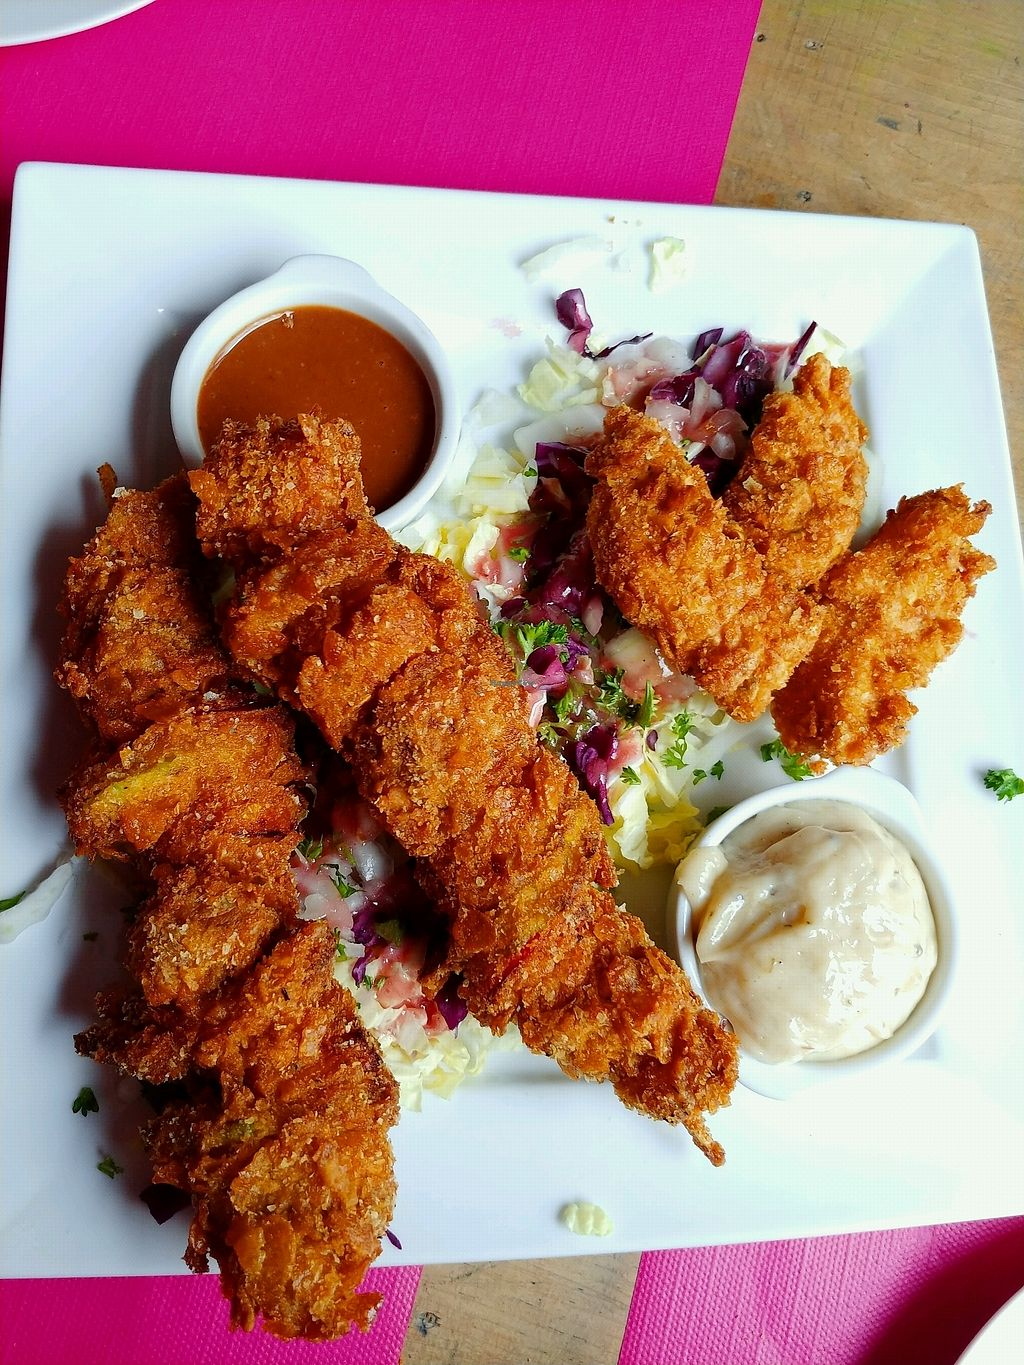 """Photo of Kick Tap'Ass  by <a href=""""/members/profile/AthenaTrombly"""">AthenaTrombly</a> <br/>Fried vegetables for vegetarian/vegan and fried chicken for meat eater <br/> April 5, 2018  - <a href='/contact/abuse/image/57652/381282'>Report</a>"""